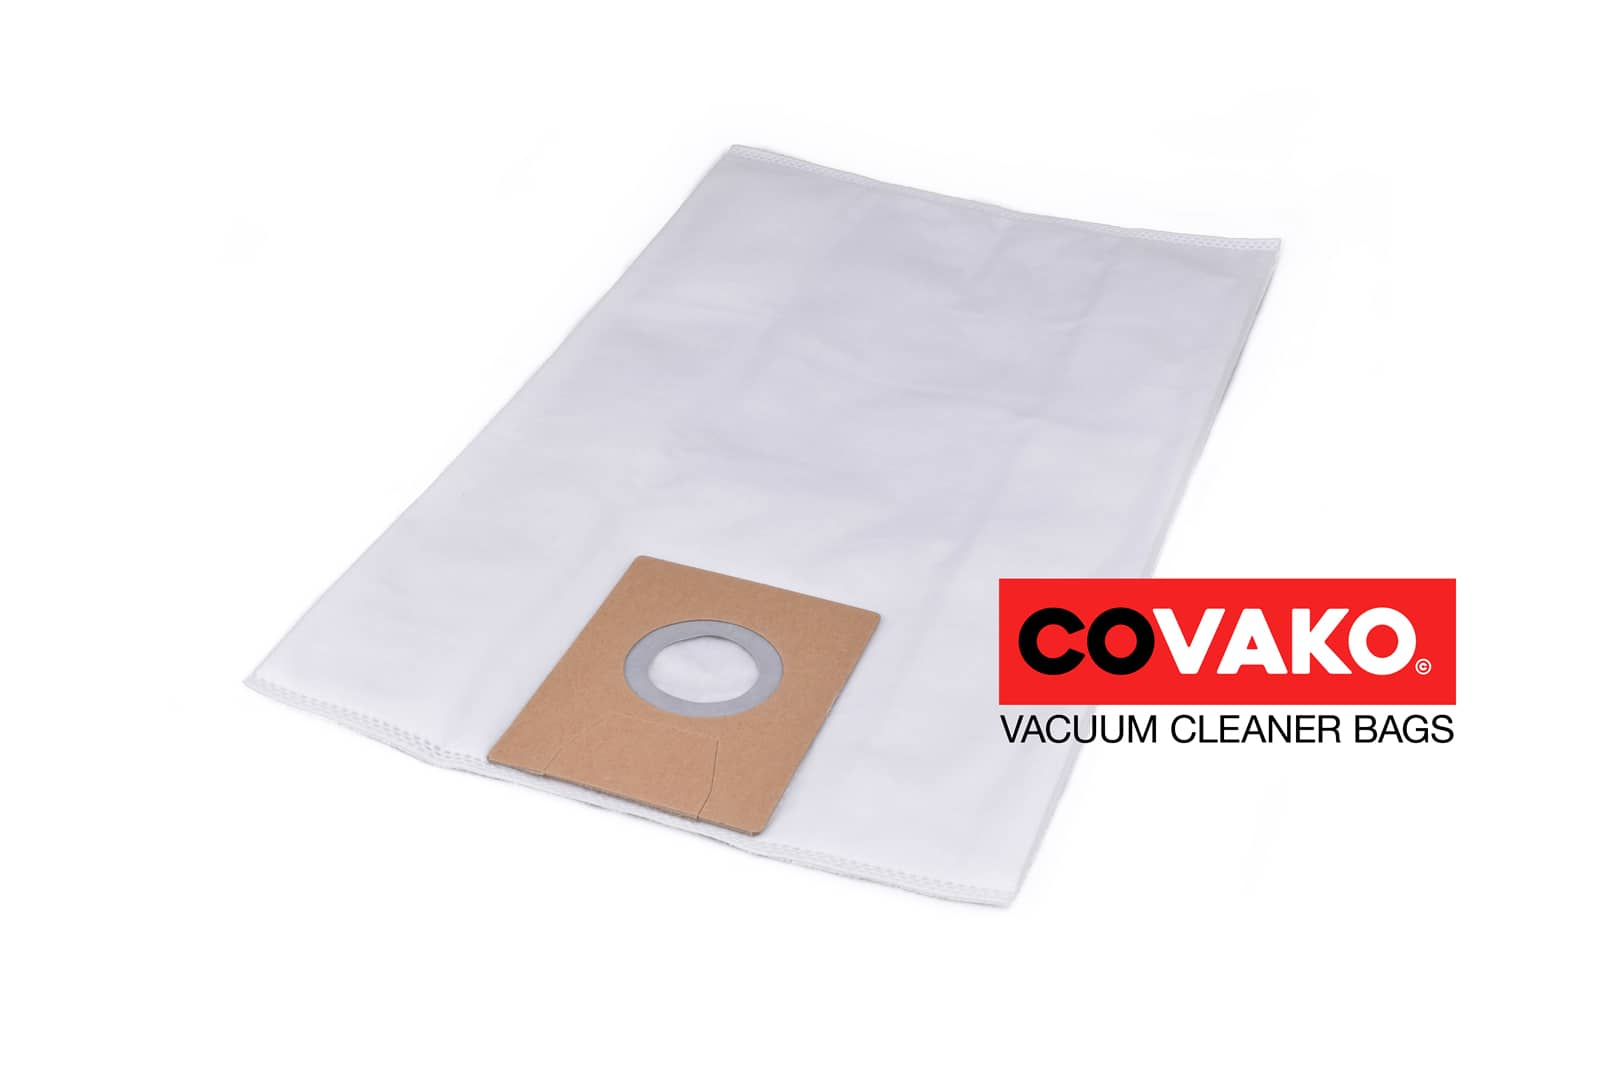 Nilco S 22 / Synthesis - Nilco vacuum cleaner bags